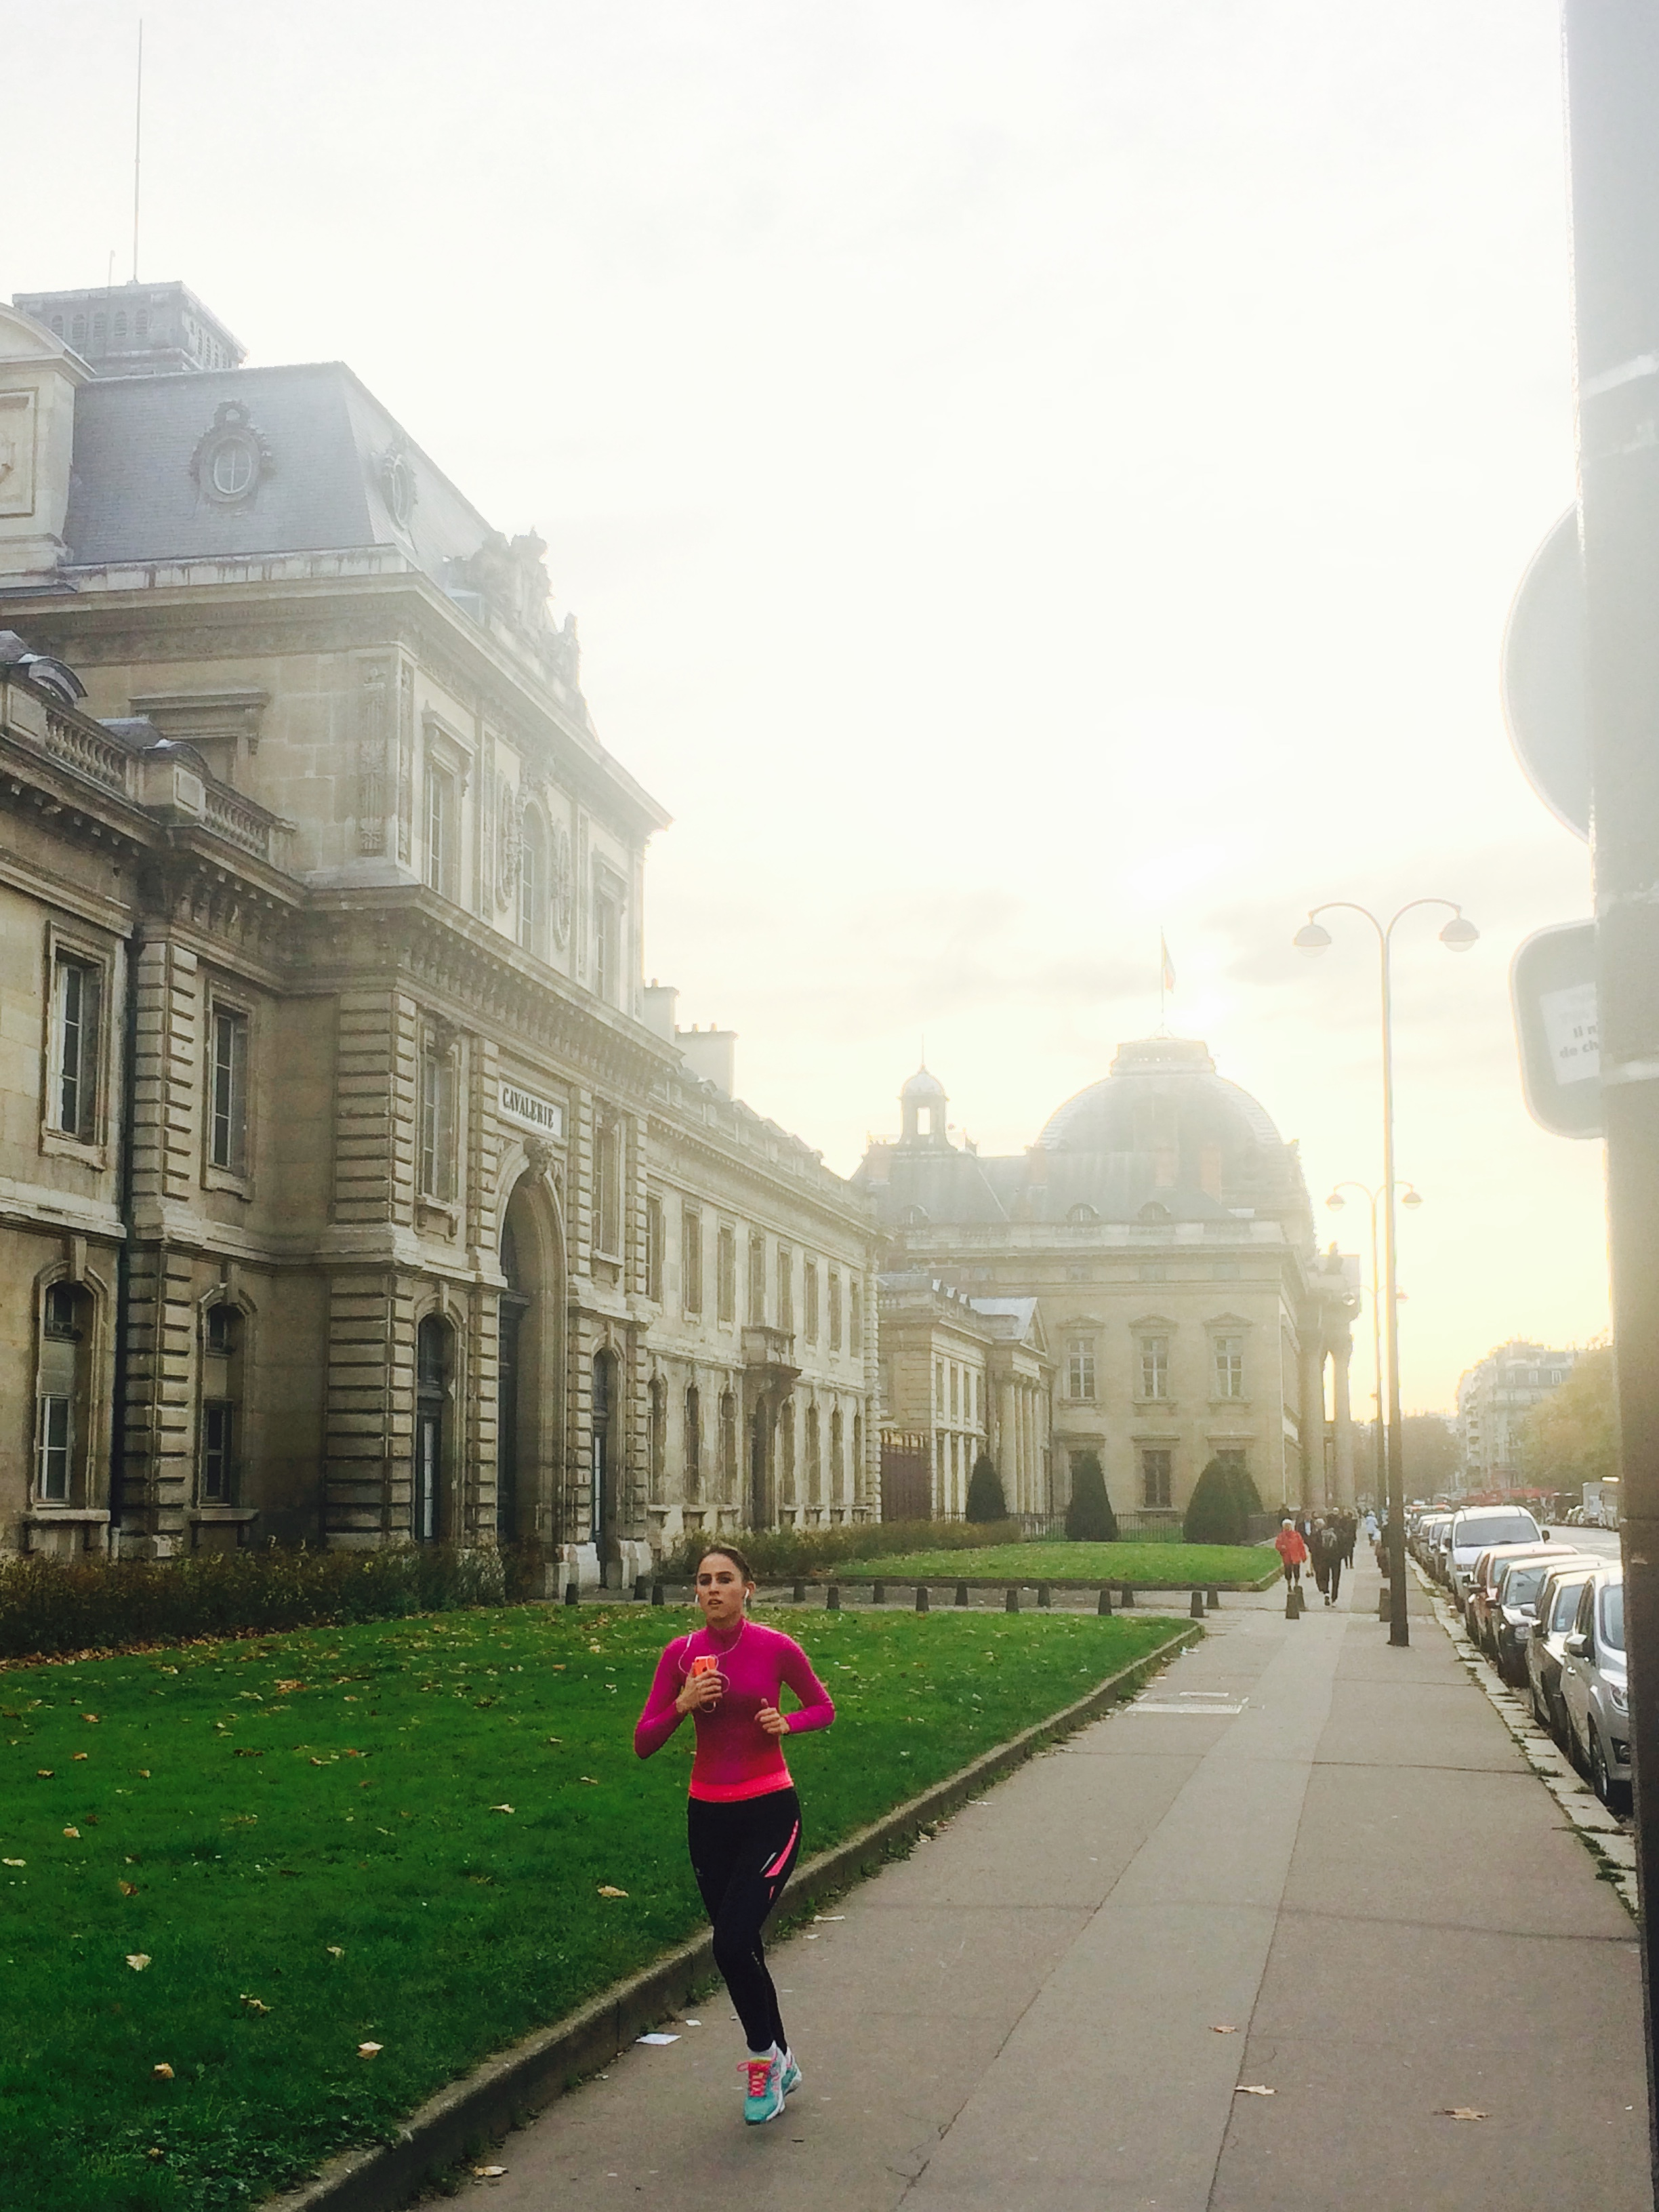 In front of Ecole Militaire